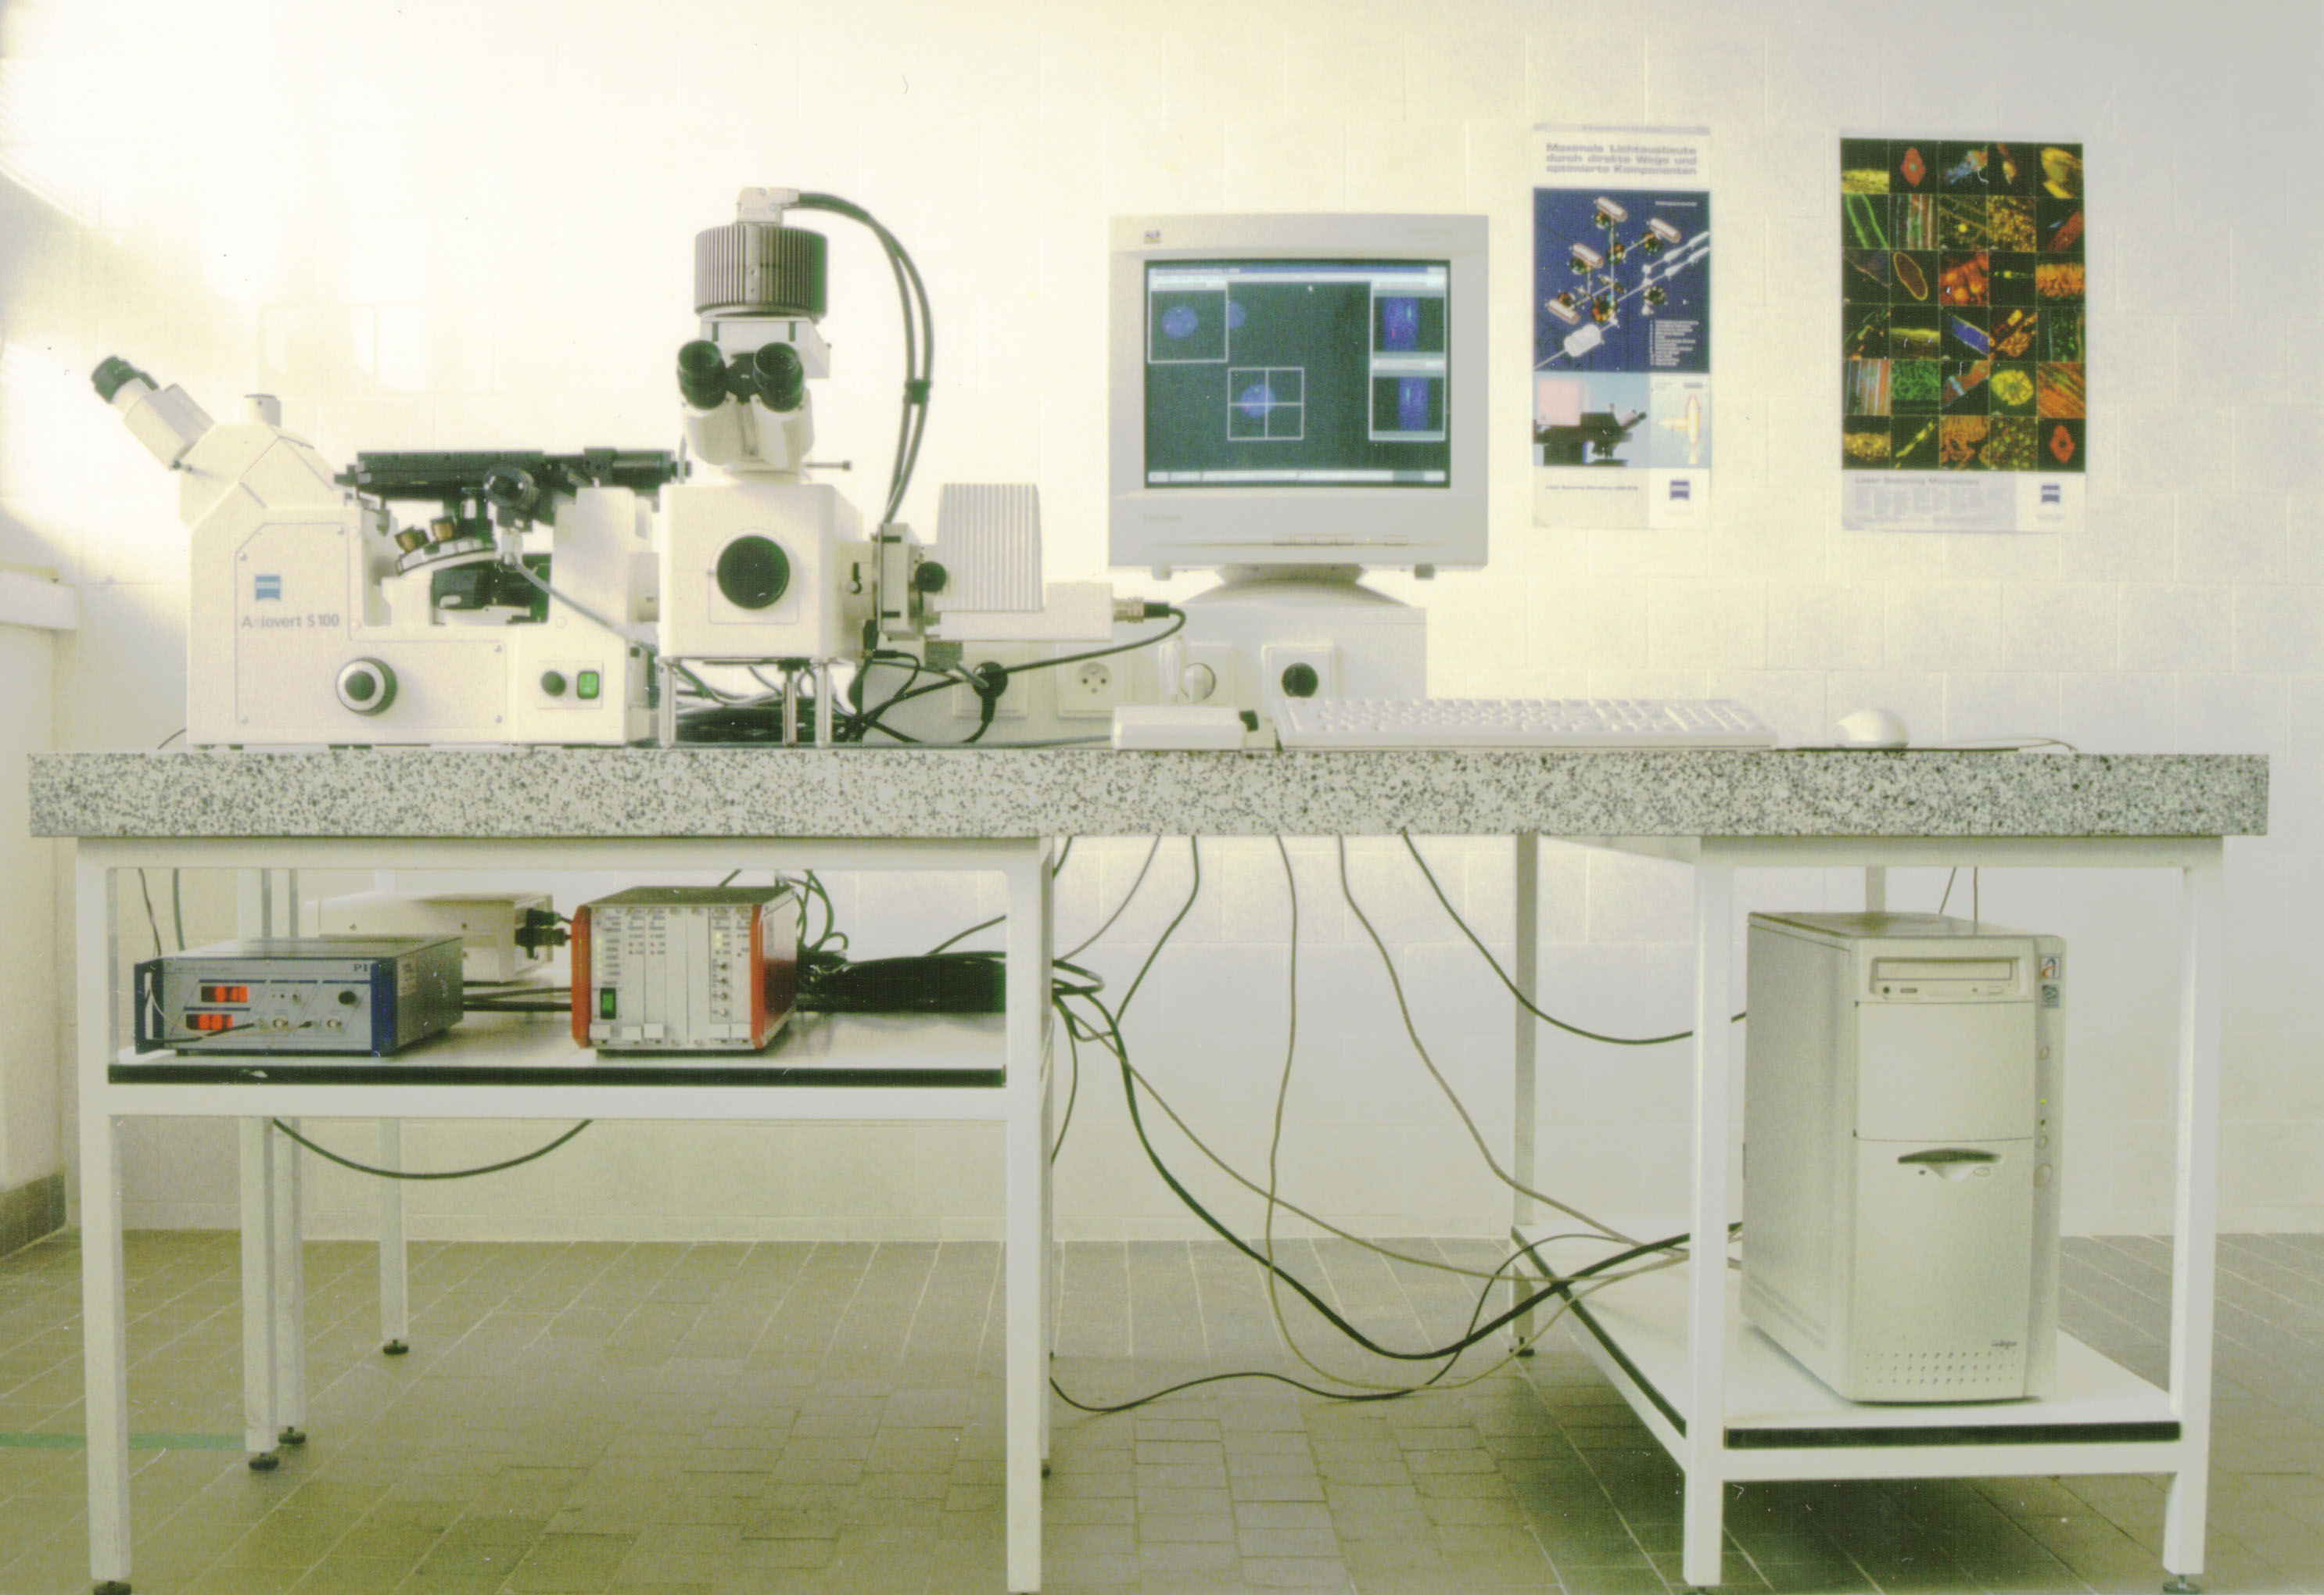 Brno microscope from 1990s